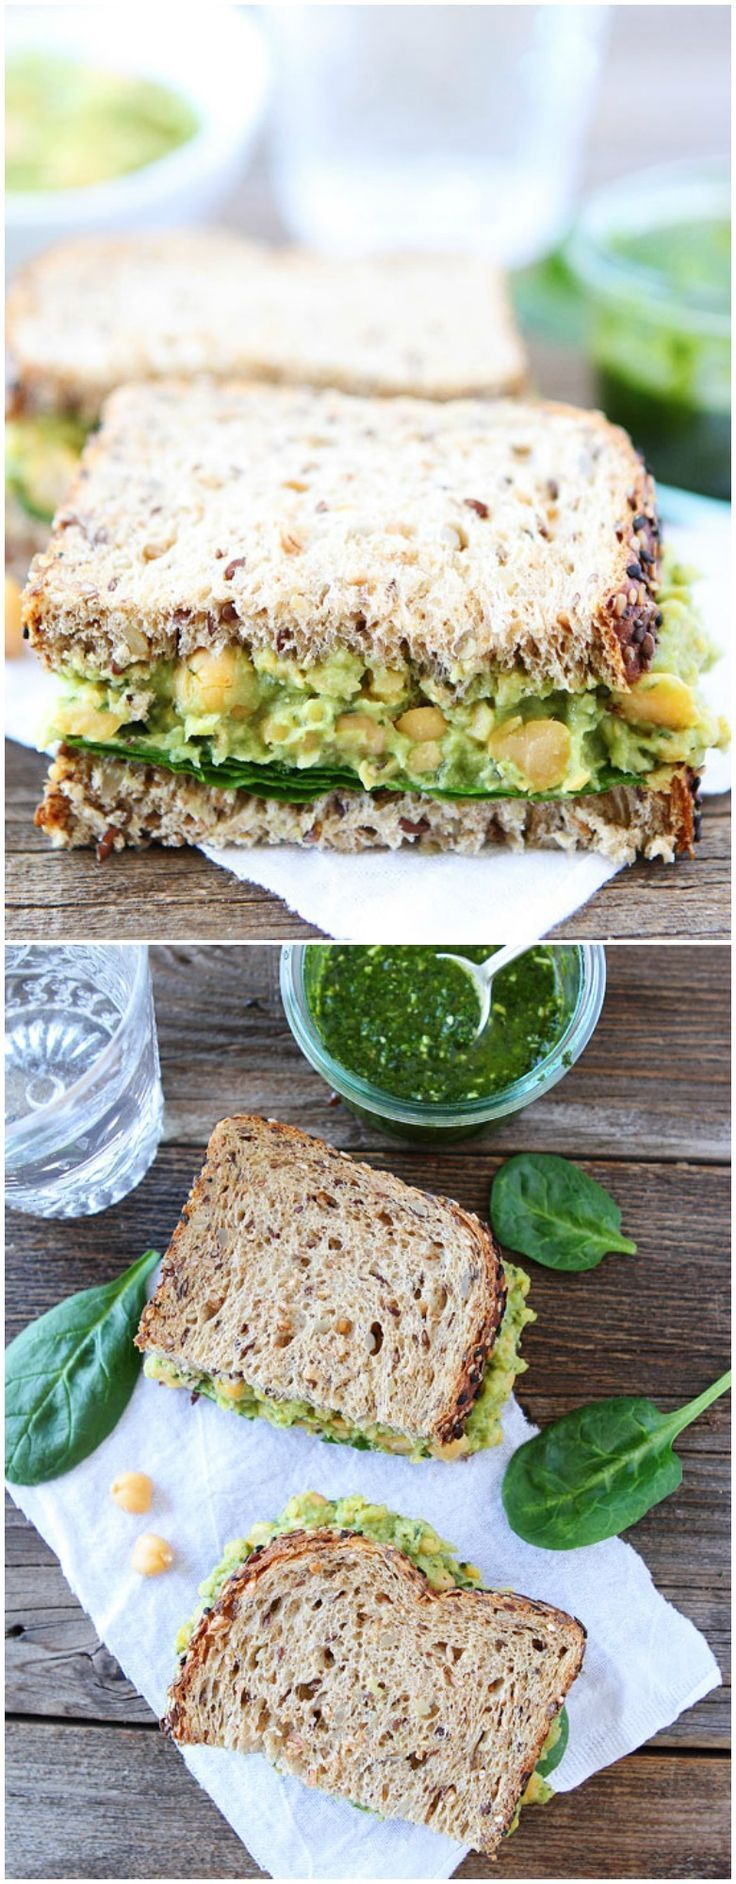 Smashed Chickpea, Avocado, and Pesto Salad Sandwich Recipe on http://twopeasandtheirpod.com  This healthy sandwich is easy to make and great for lunch or dinner!